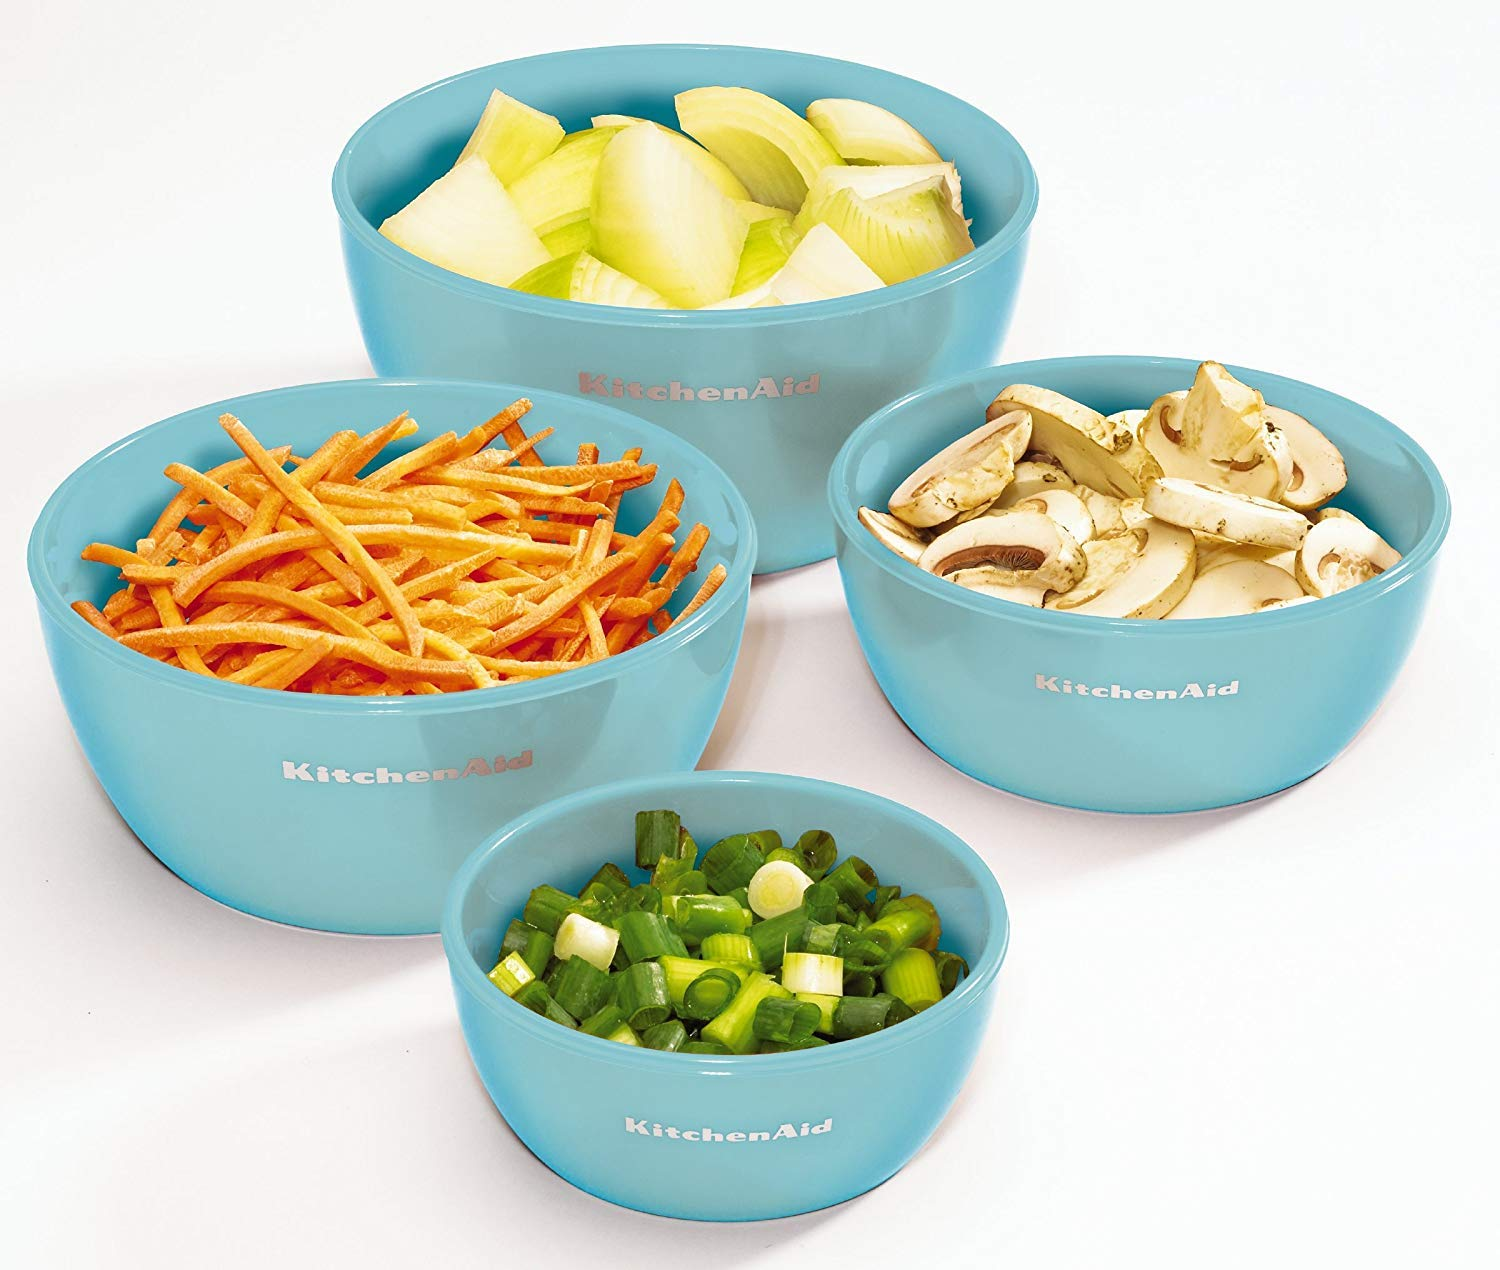 Amazon.com | KitchenAid Prep Bowls with Lids, Set of 4, Aqua Sky: Bowls